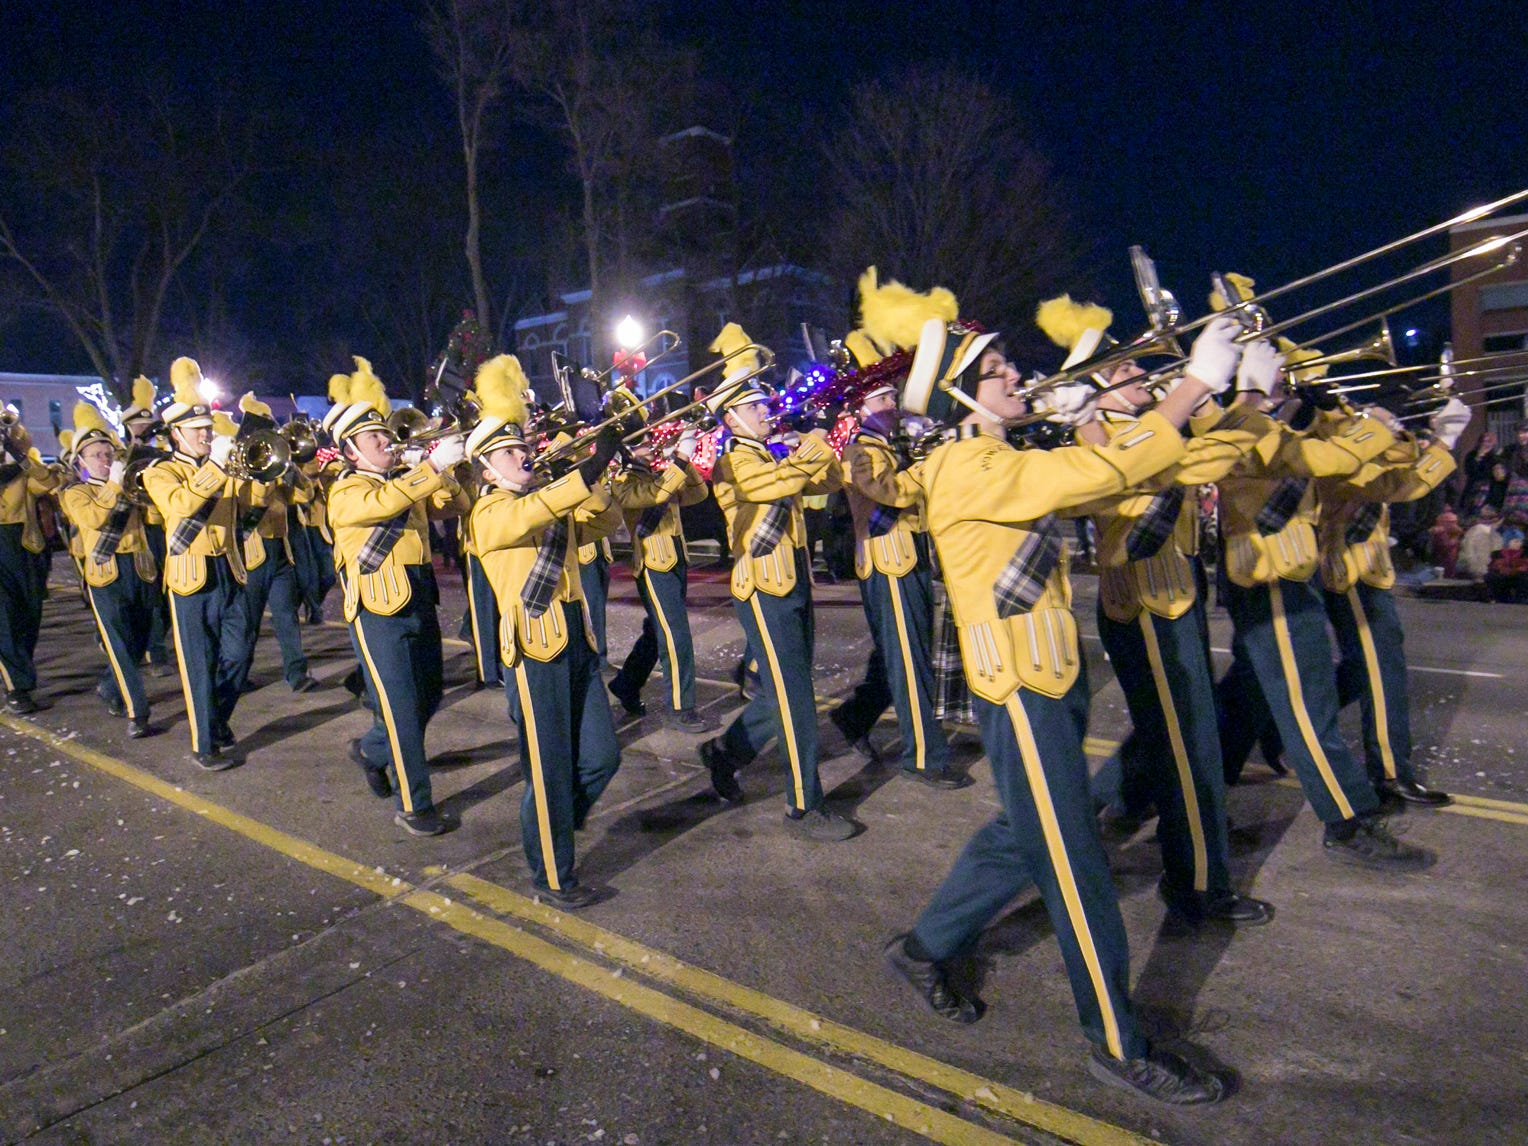 The Howell High School marching band performs in the Fantasy of Lights parade Friday, Nov. 23, 2018.